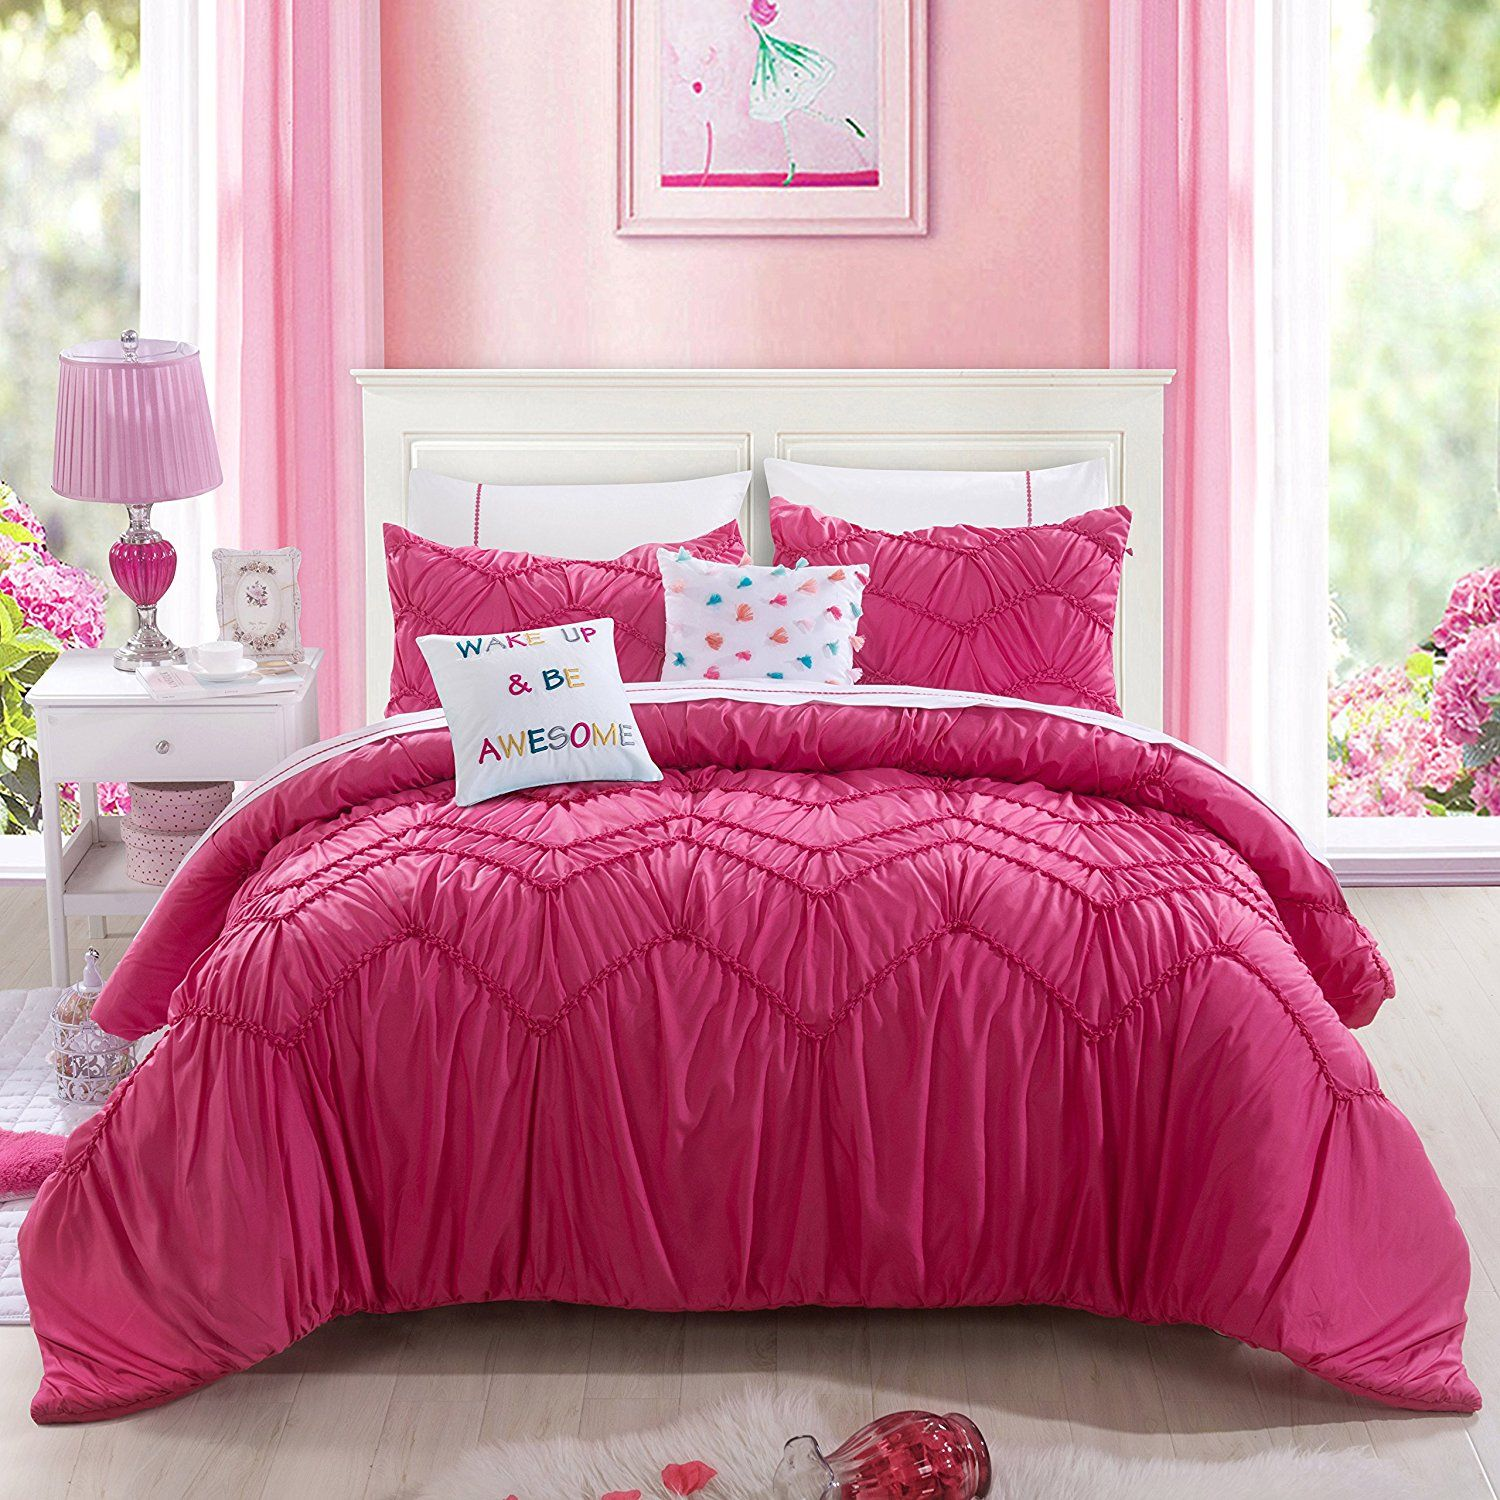 Pin On Kids Dream Rooms With Cool Stuff